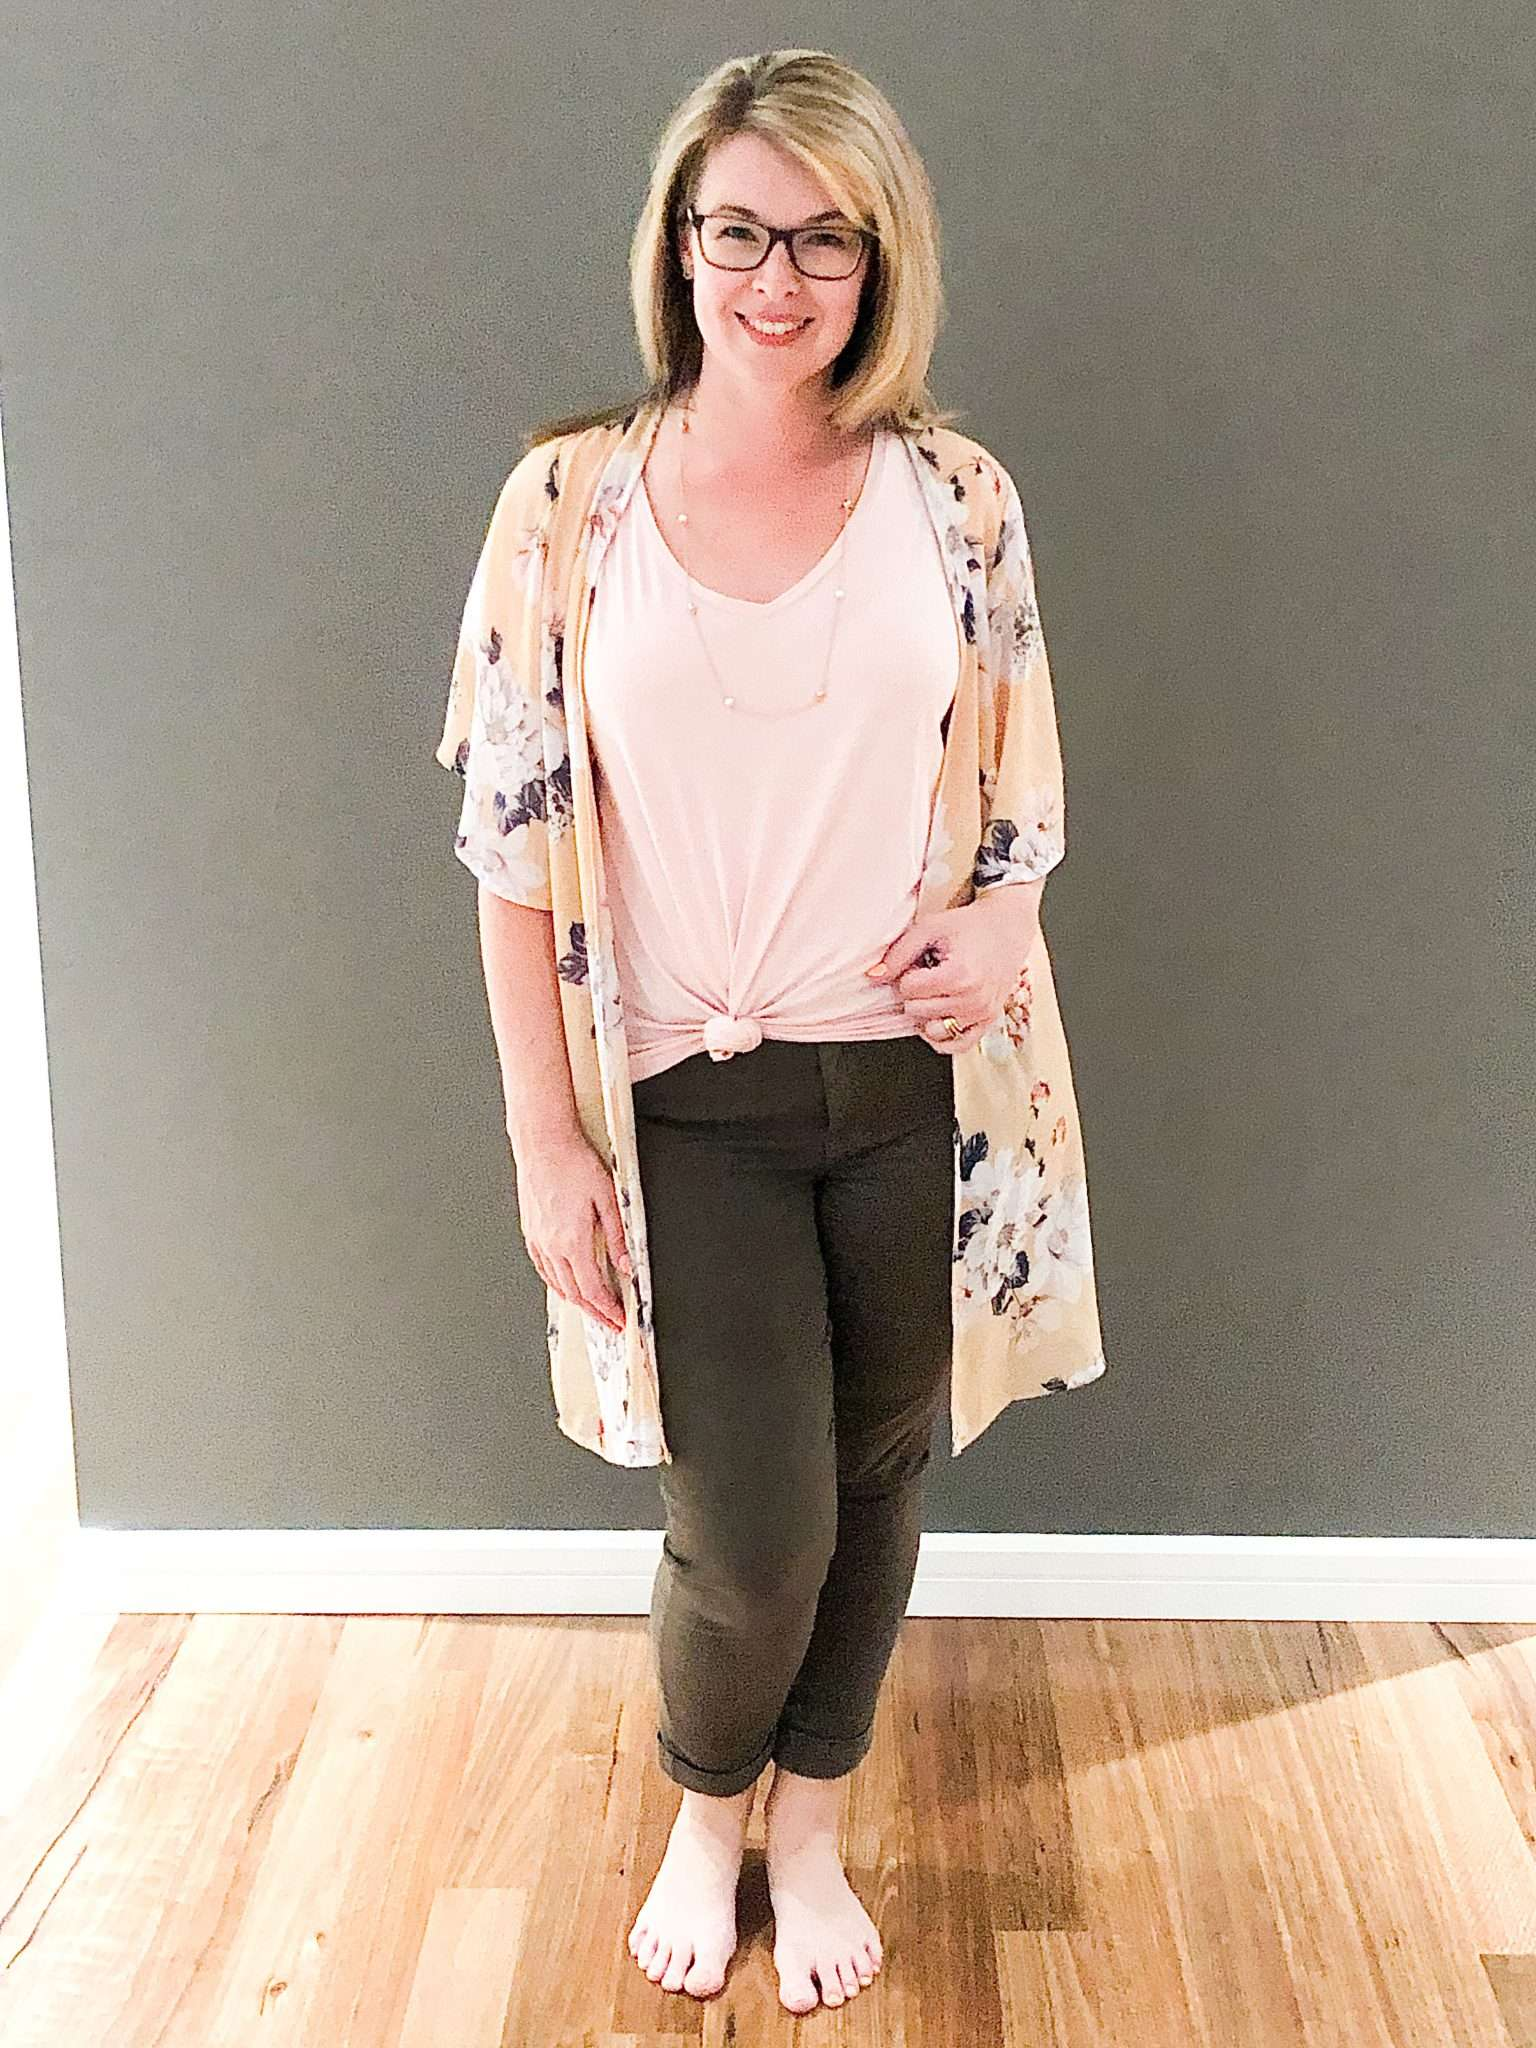 Cute Comfy Casual Outfit Idea for What to Wear At Home Around the House - Olive Pants + Color Tee + Kimono